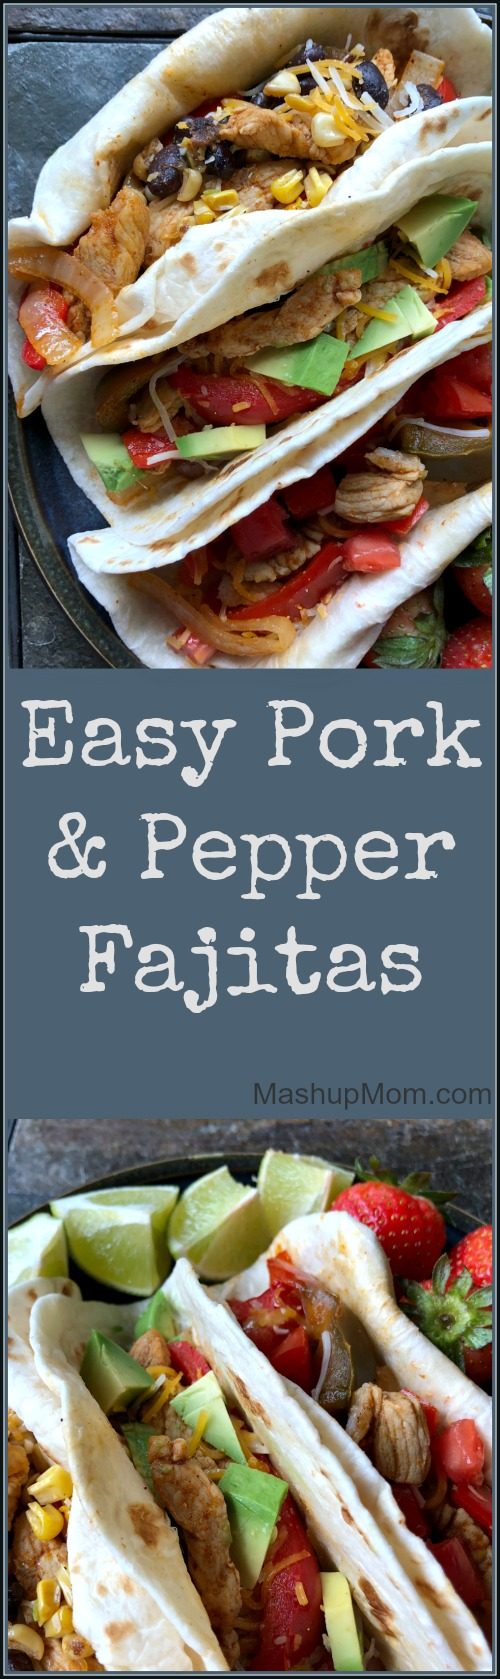 pork fajitas with bell peppers